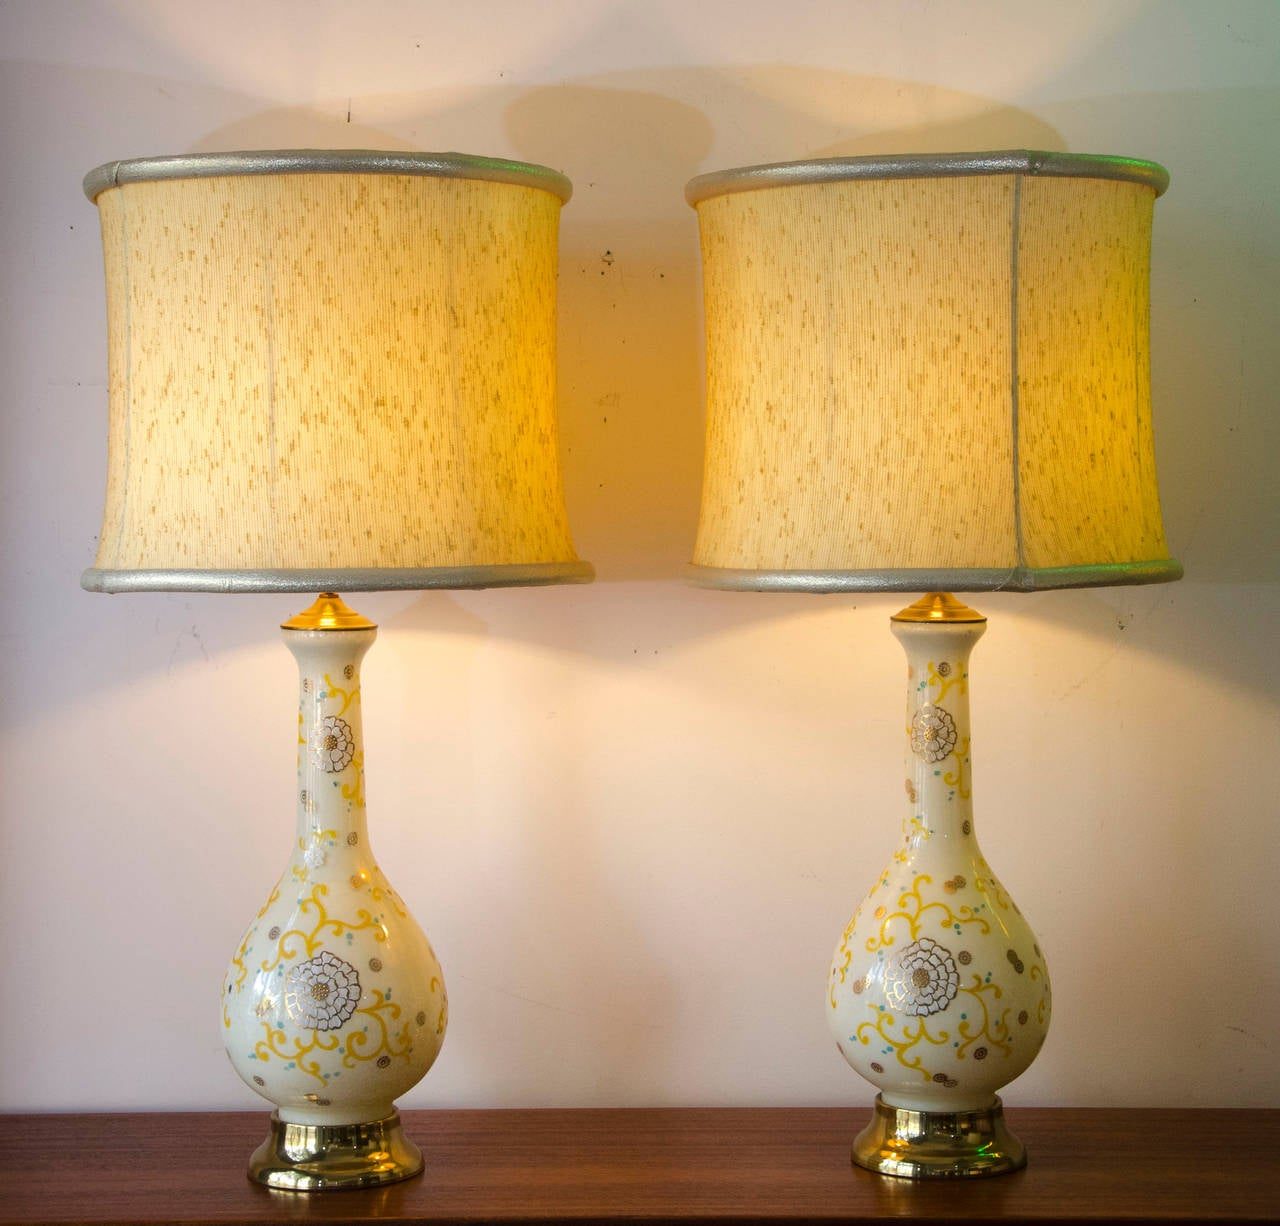 Lovely Nice Pair Of Hollywood Regency Glamorous Lamps, Hand Painted Appearing  Detail On The Glass Base